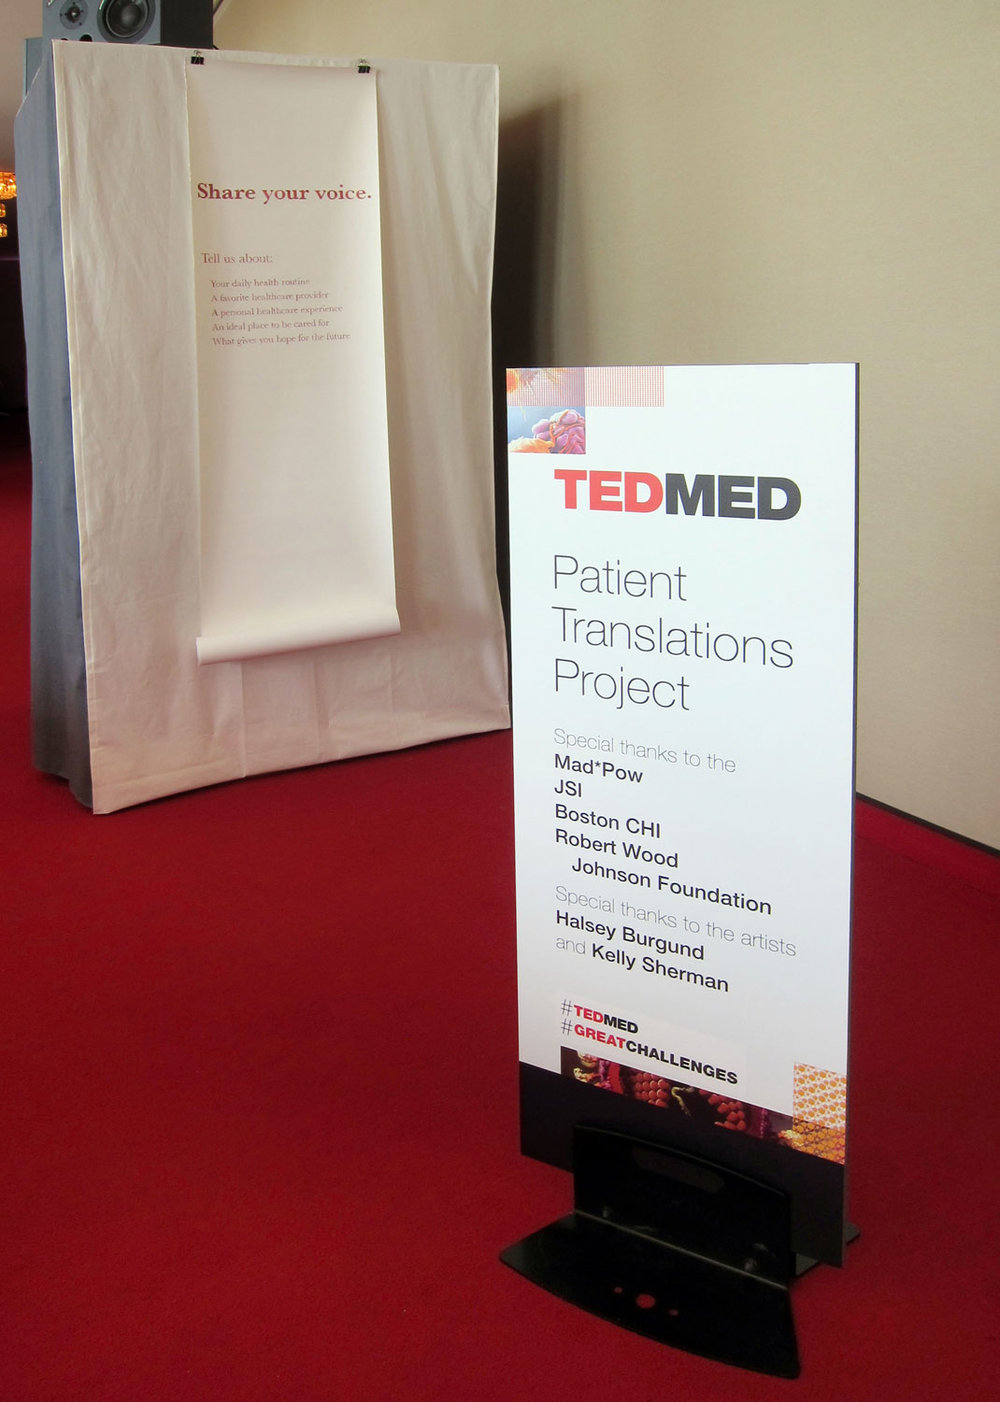 1304-PatientTranslations-TEDMED_55_xl.jpg